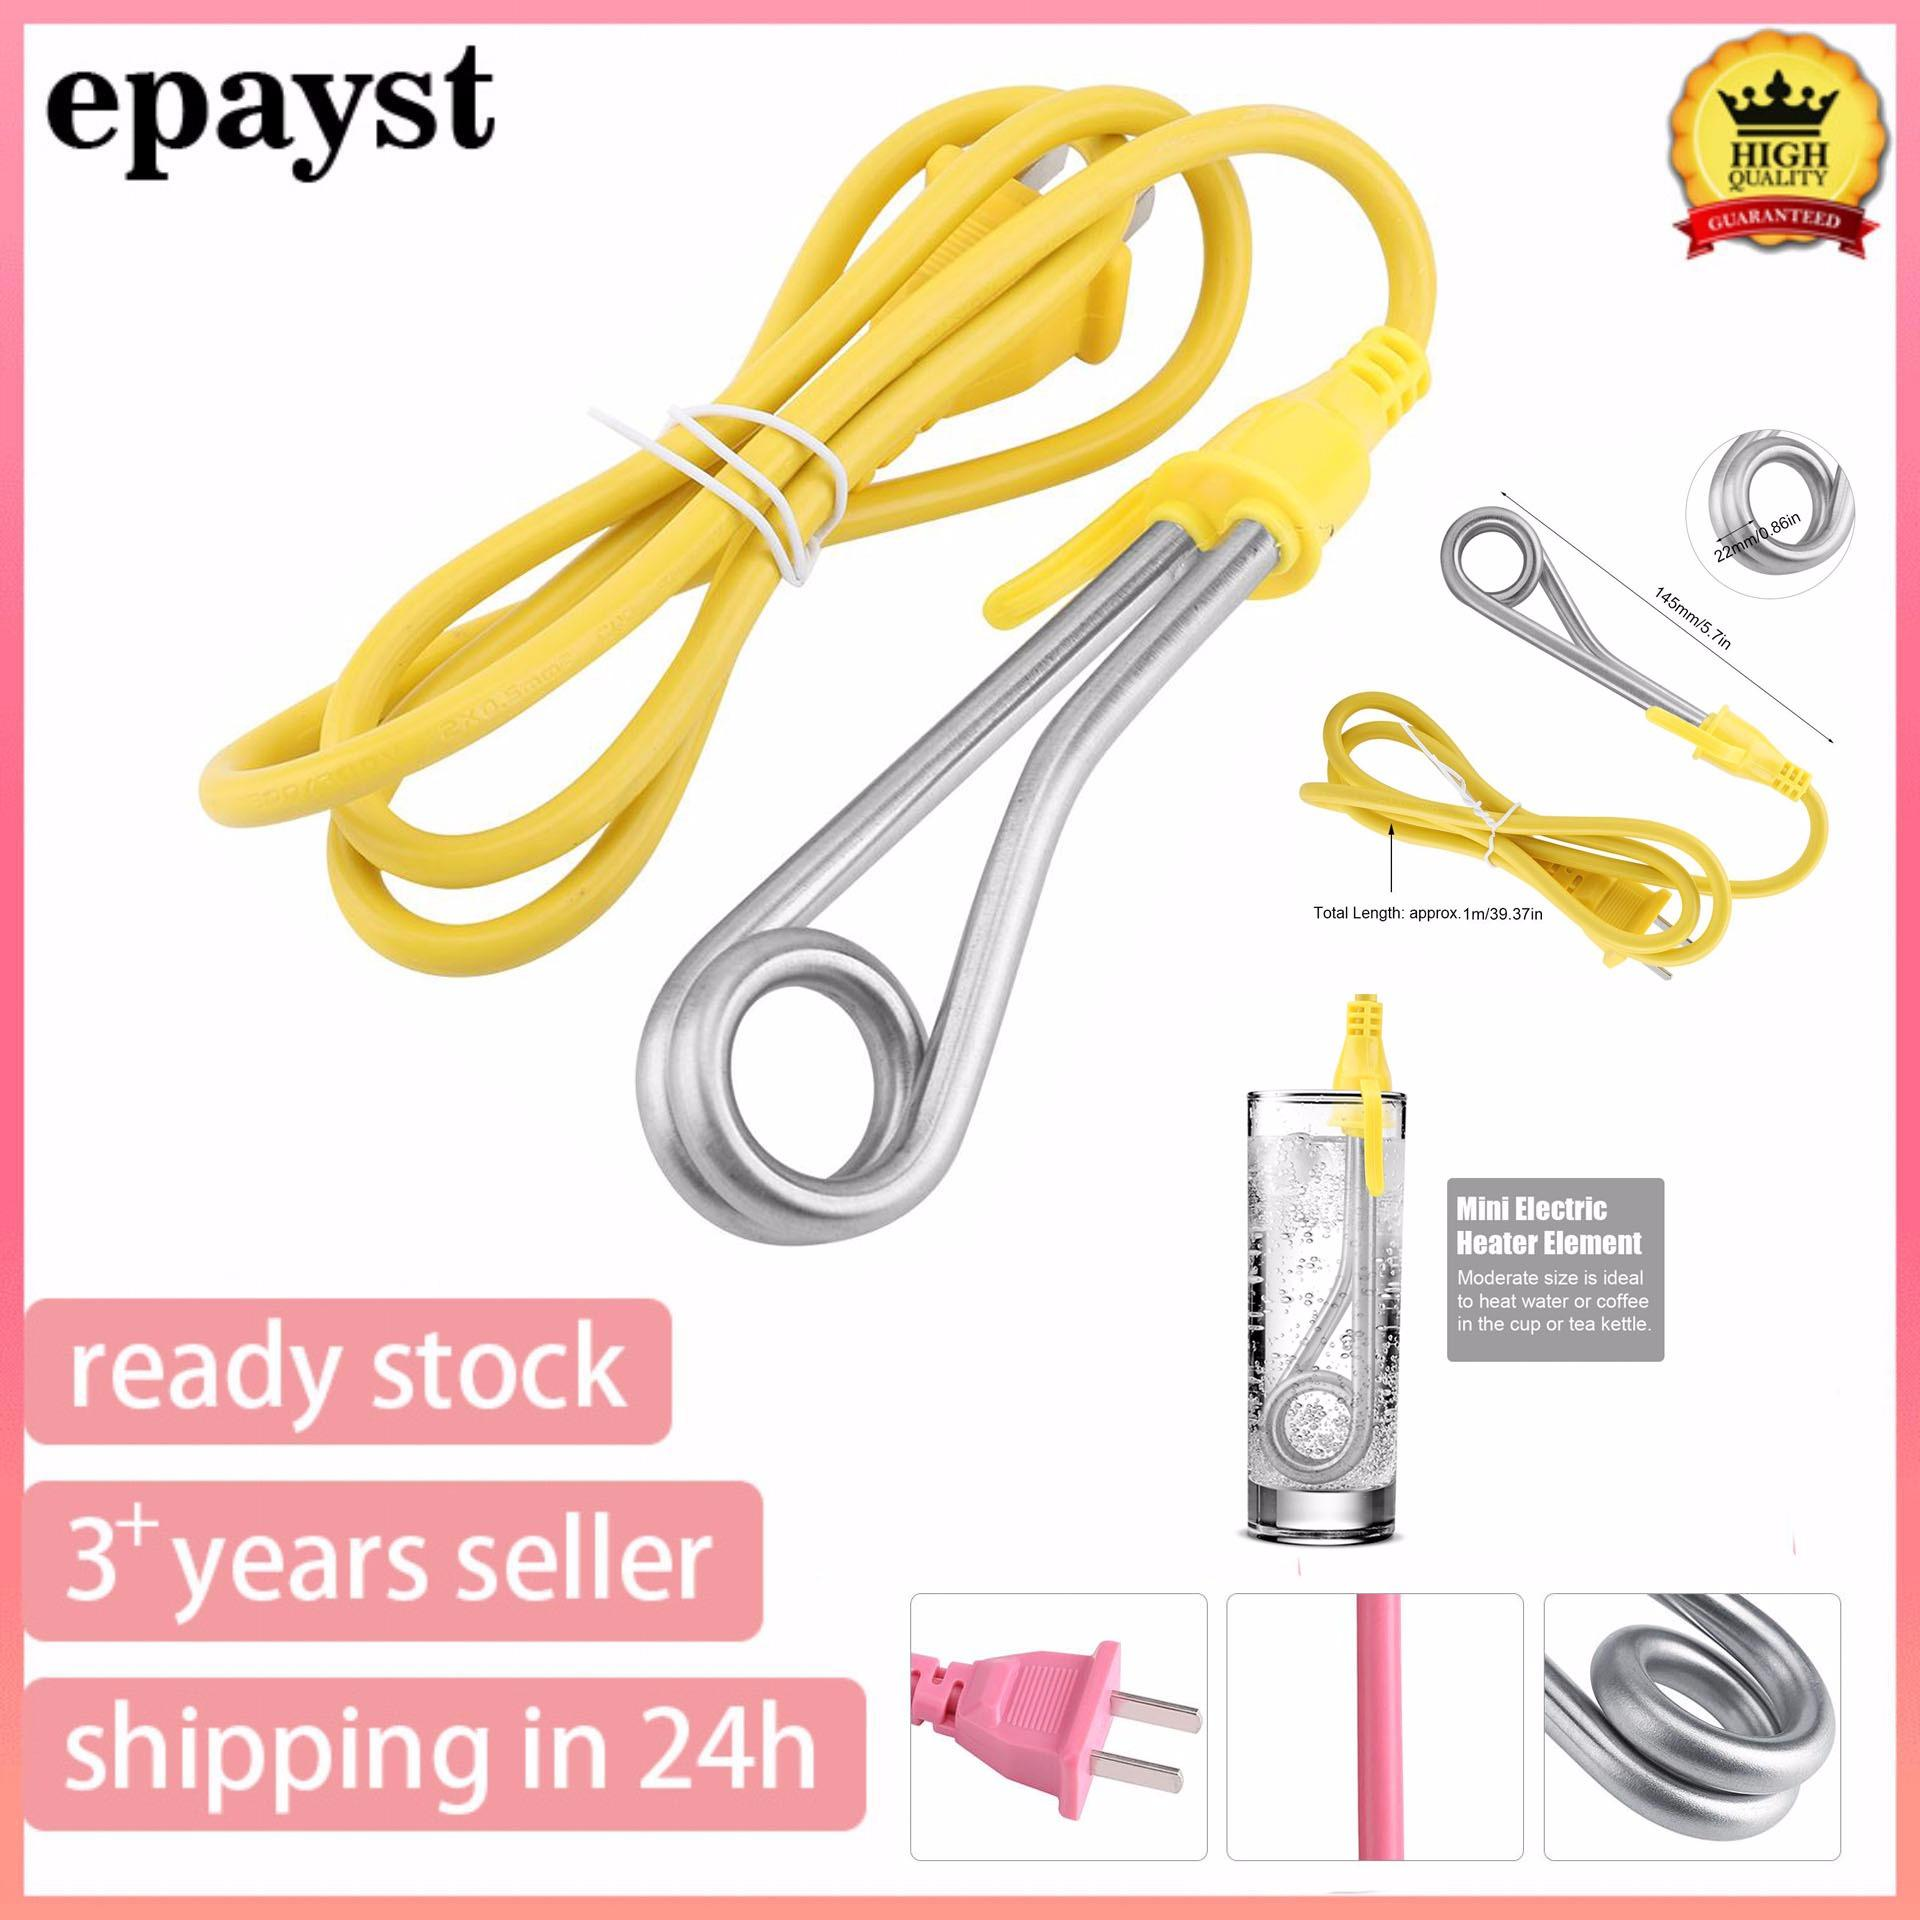 hight resolution of epayst electric heater element mini boiler hot water coffee immersion travel use 600w 220v